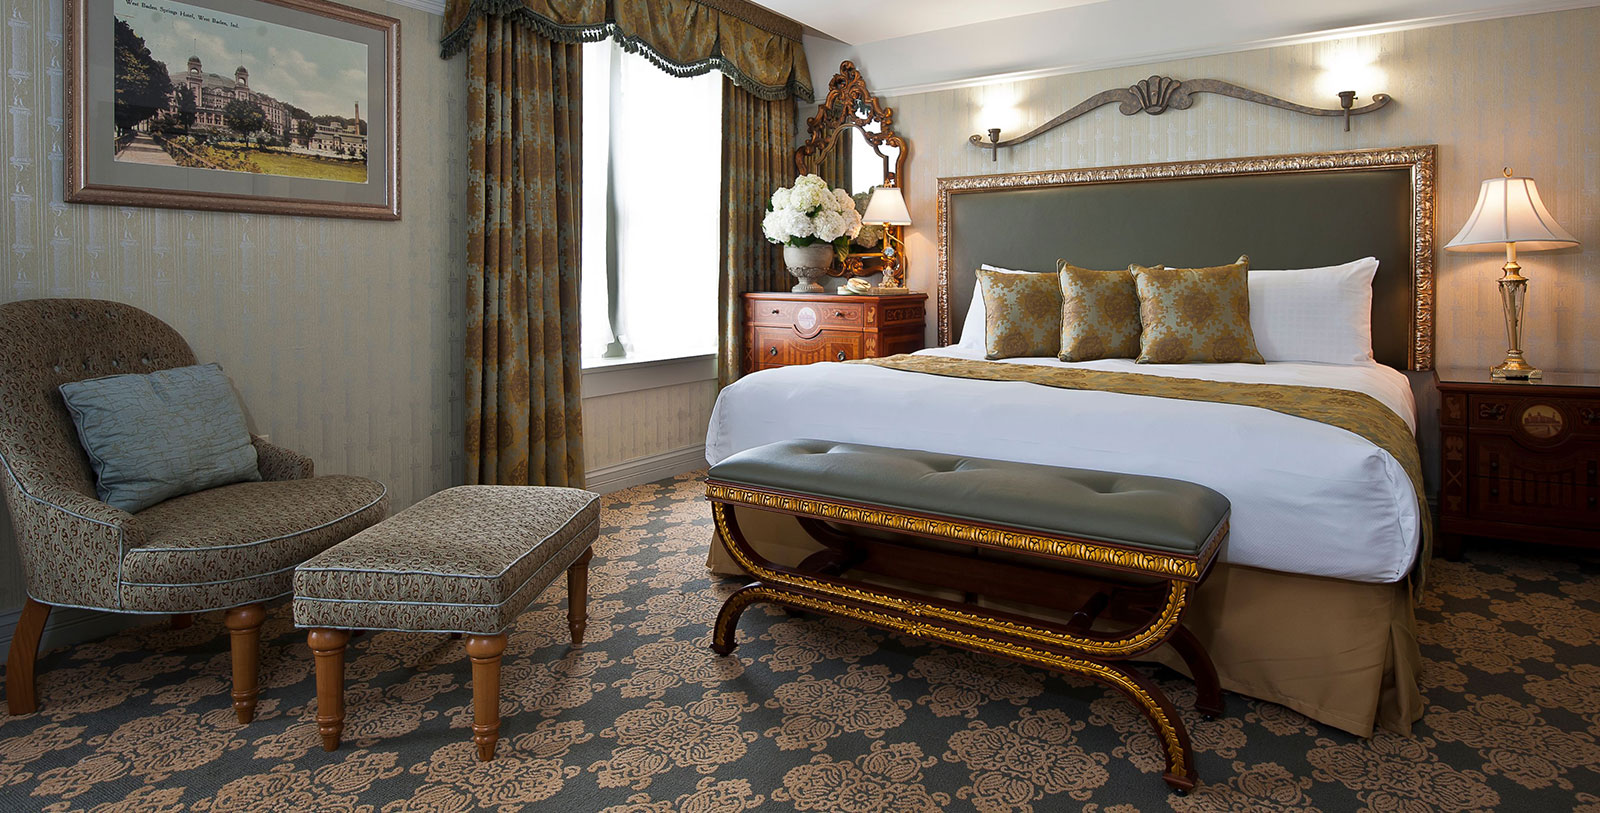 Image of guestroom at French Lick Springs Hotel, 1845, Member of Historic Hotels of America, in French Lick, Indiana, Accommodations